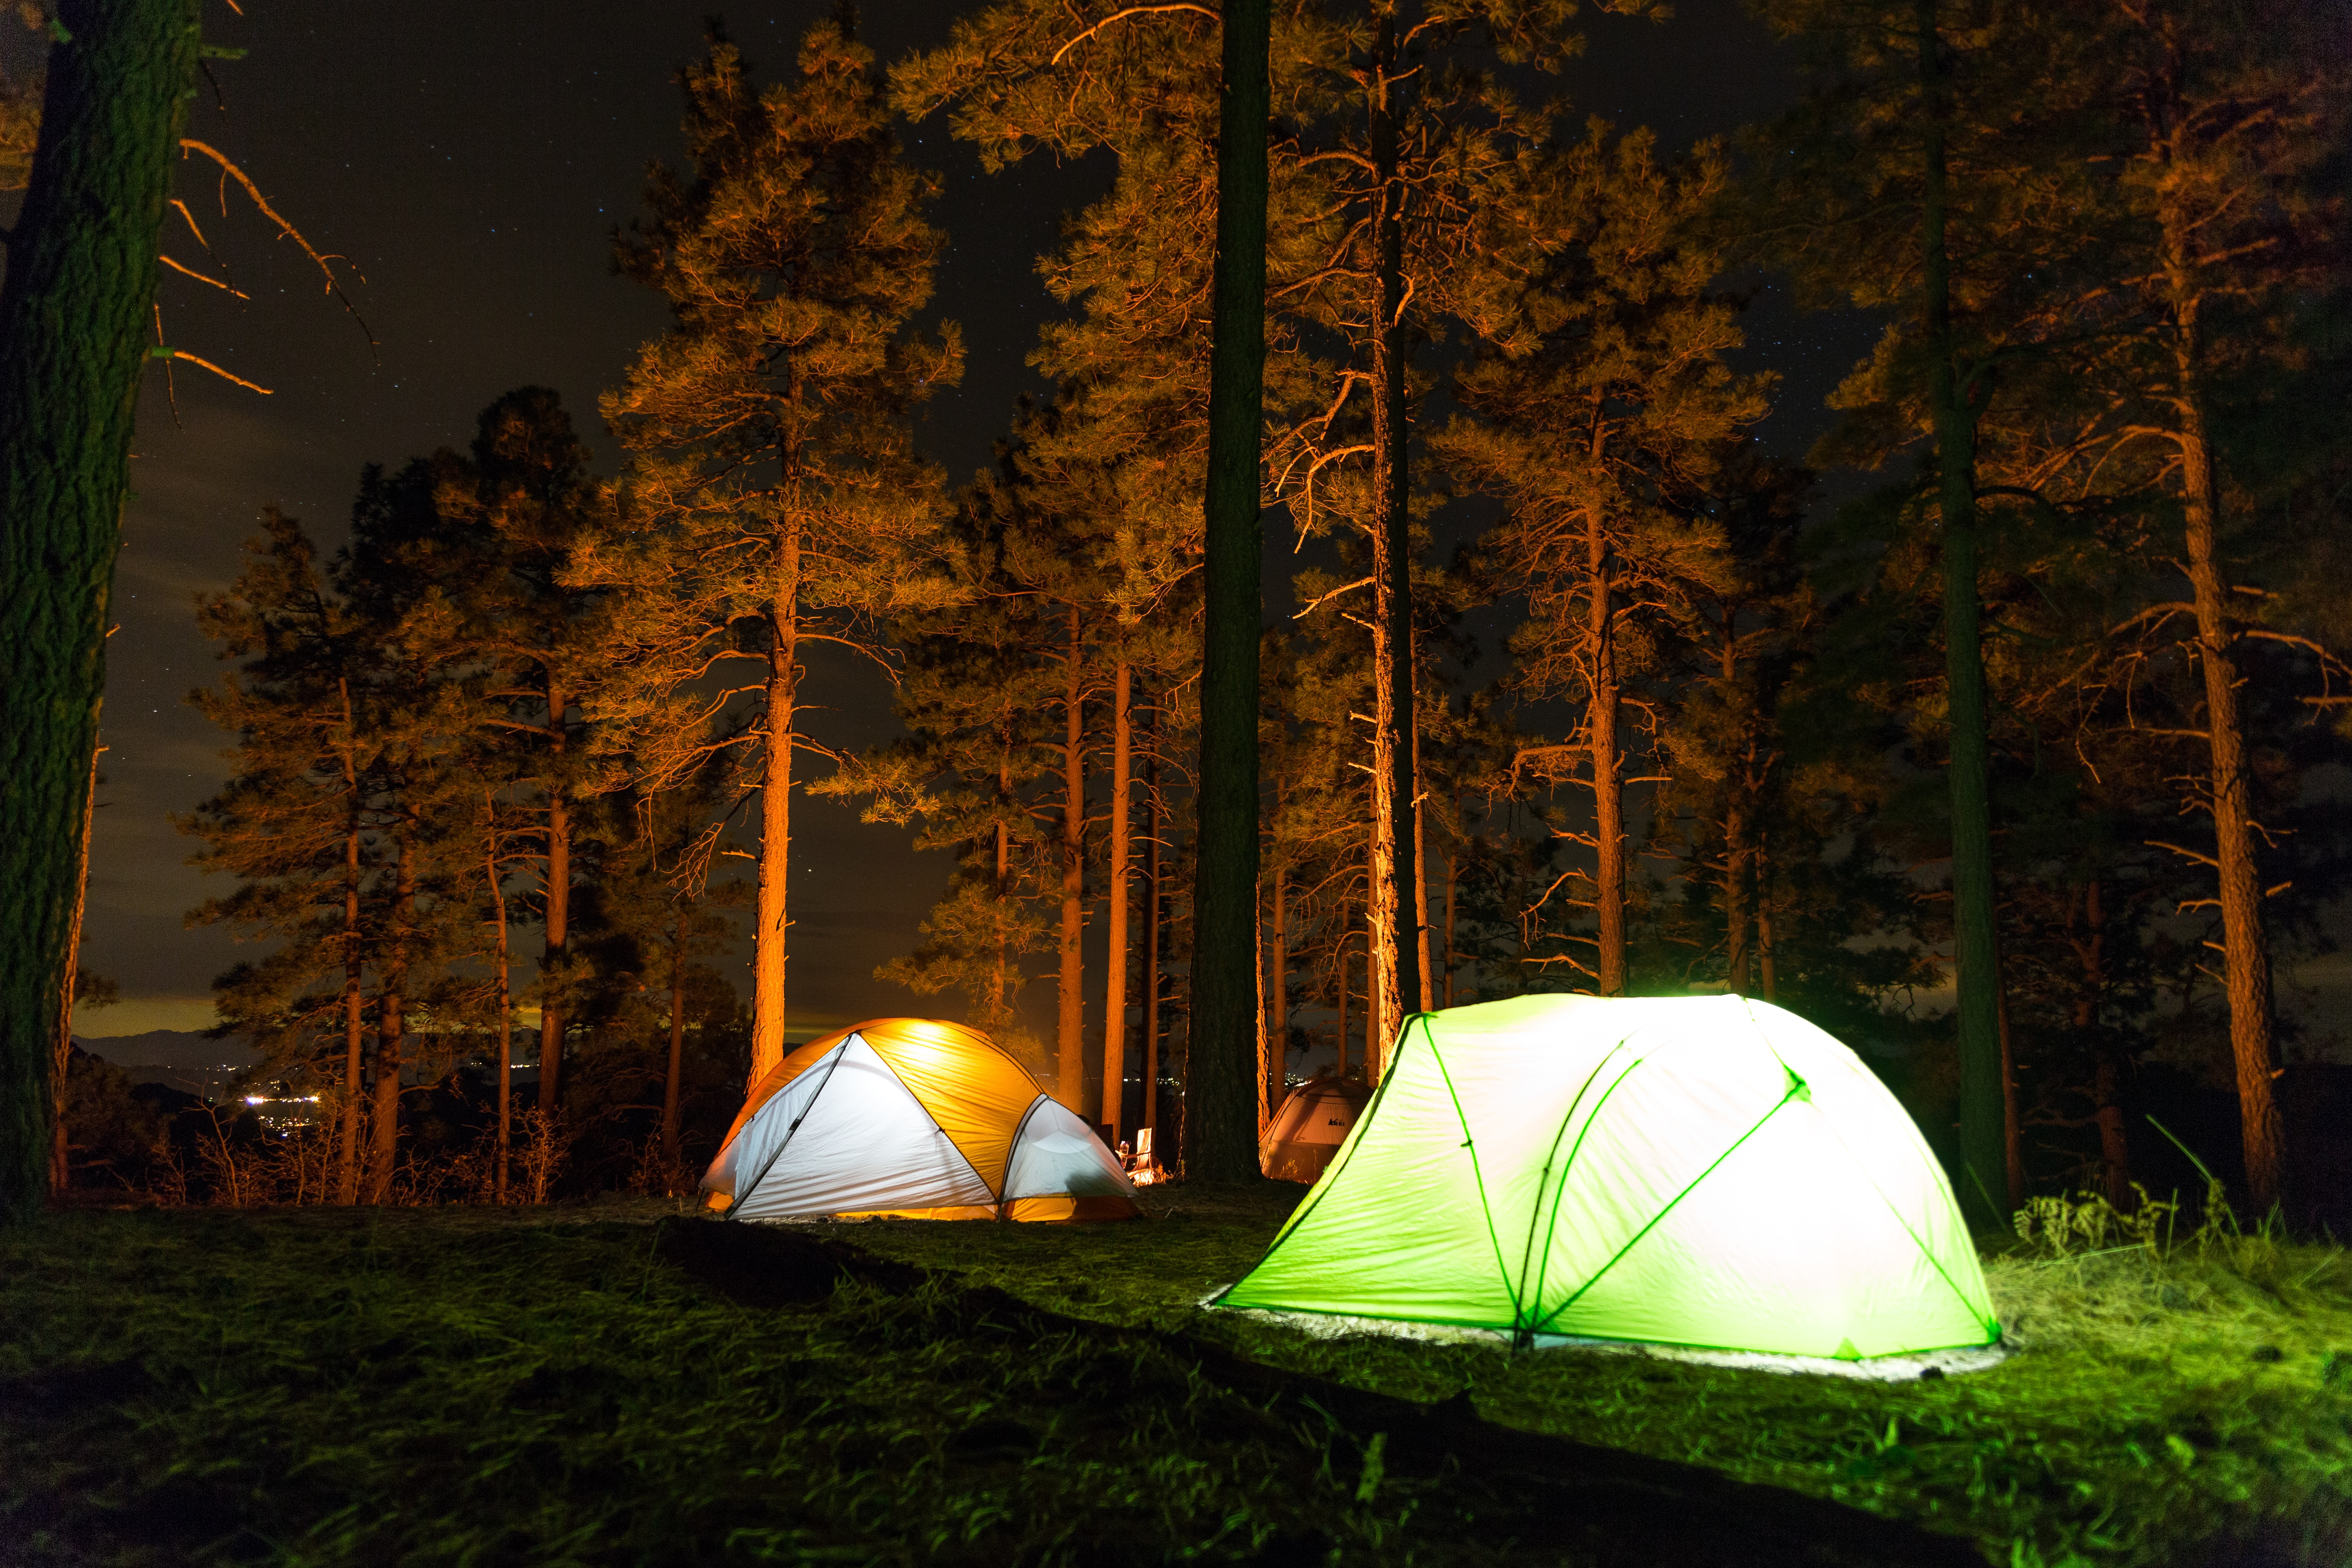 green and orange tent in the forest